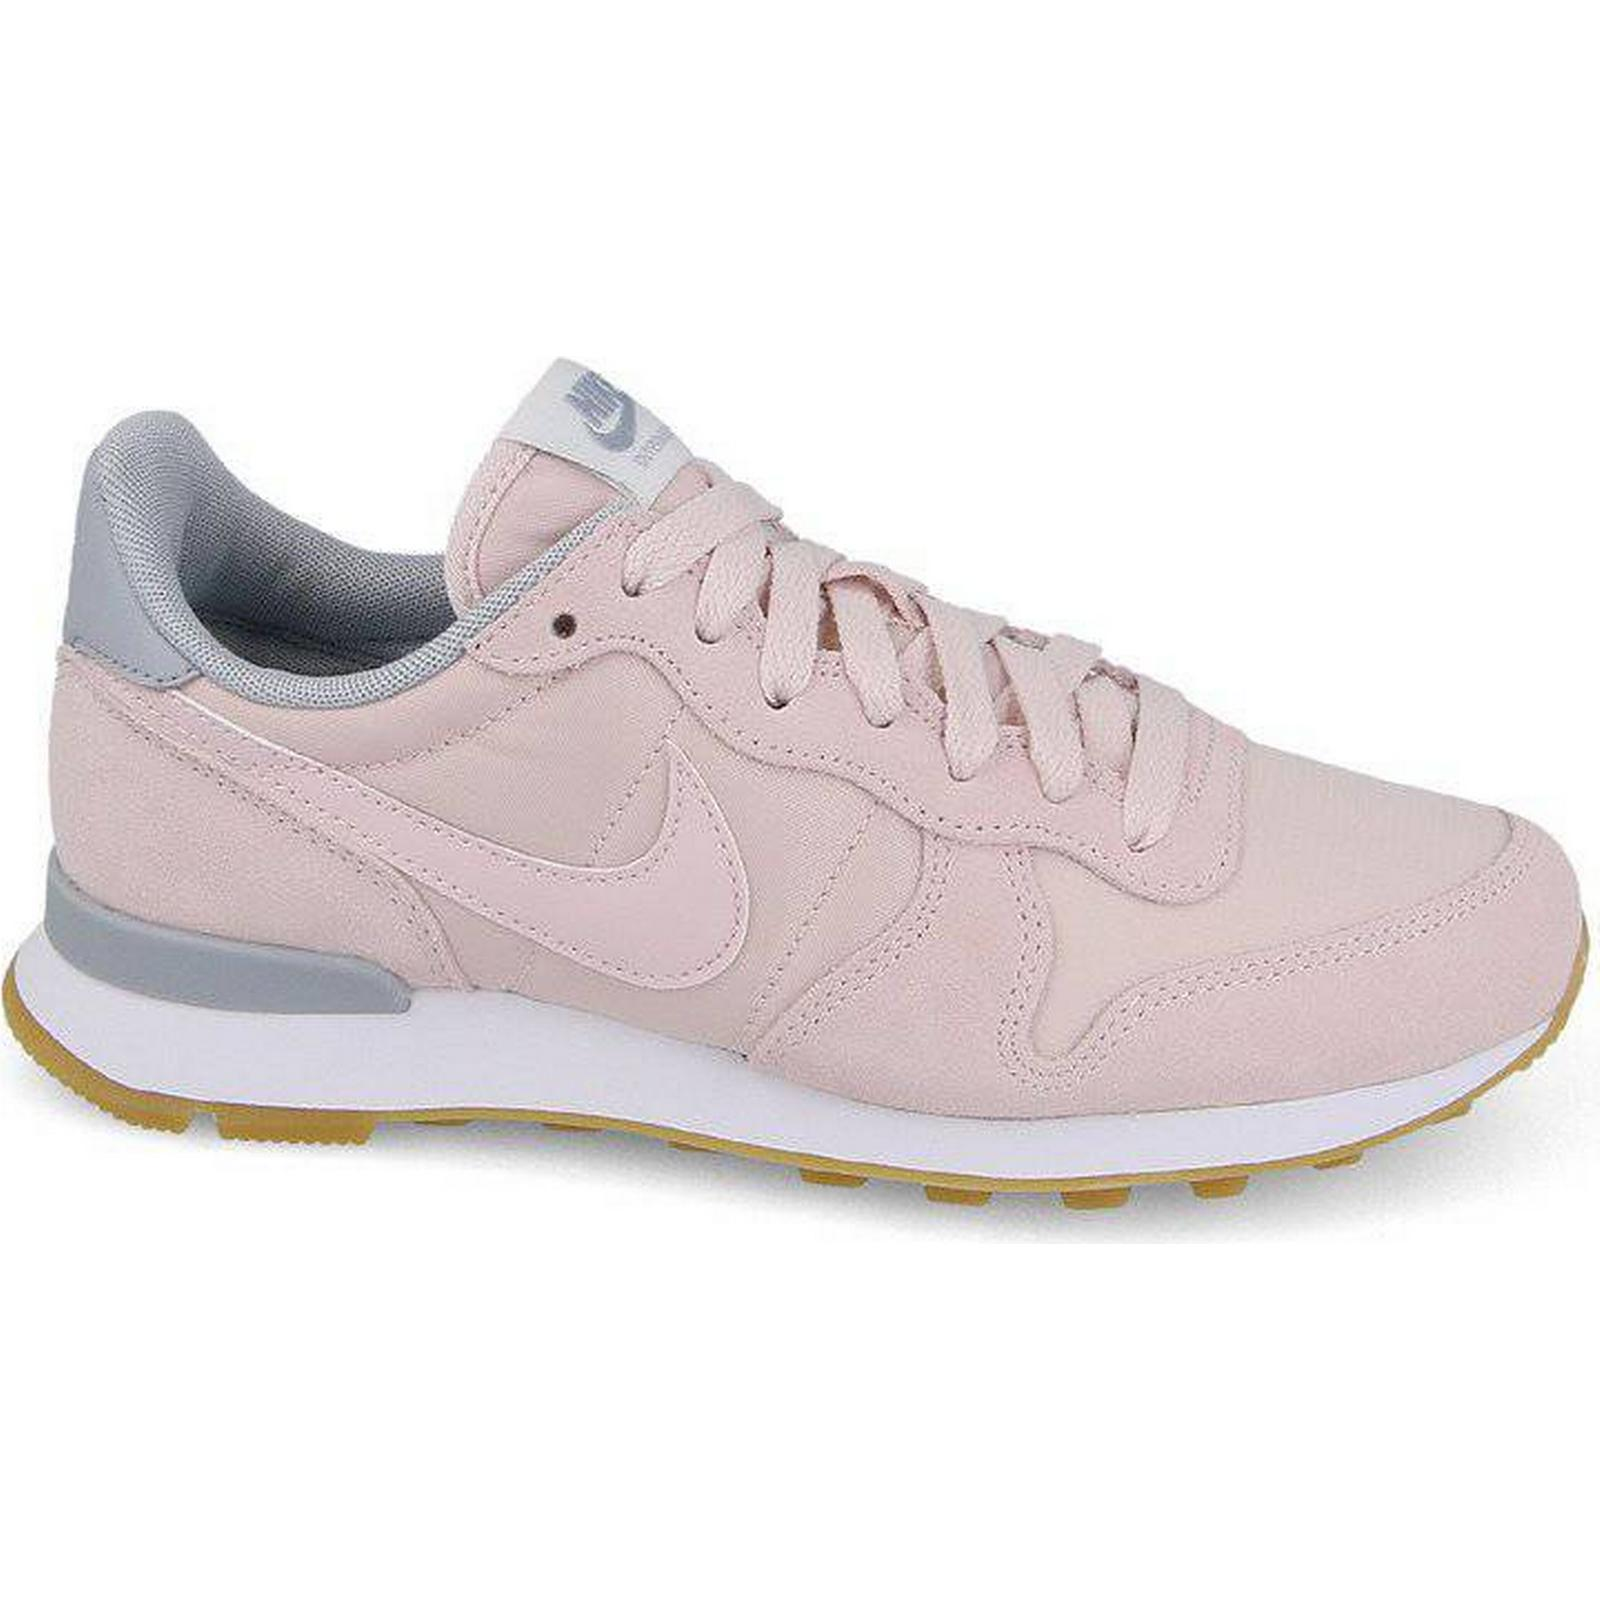 new product 998a6 26230 homme homme homme femme - nike internationaliste entretien 828407-612 -  3e73a6